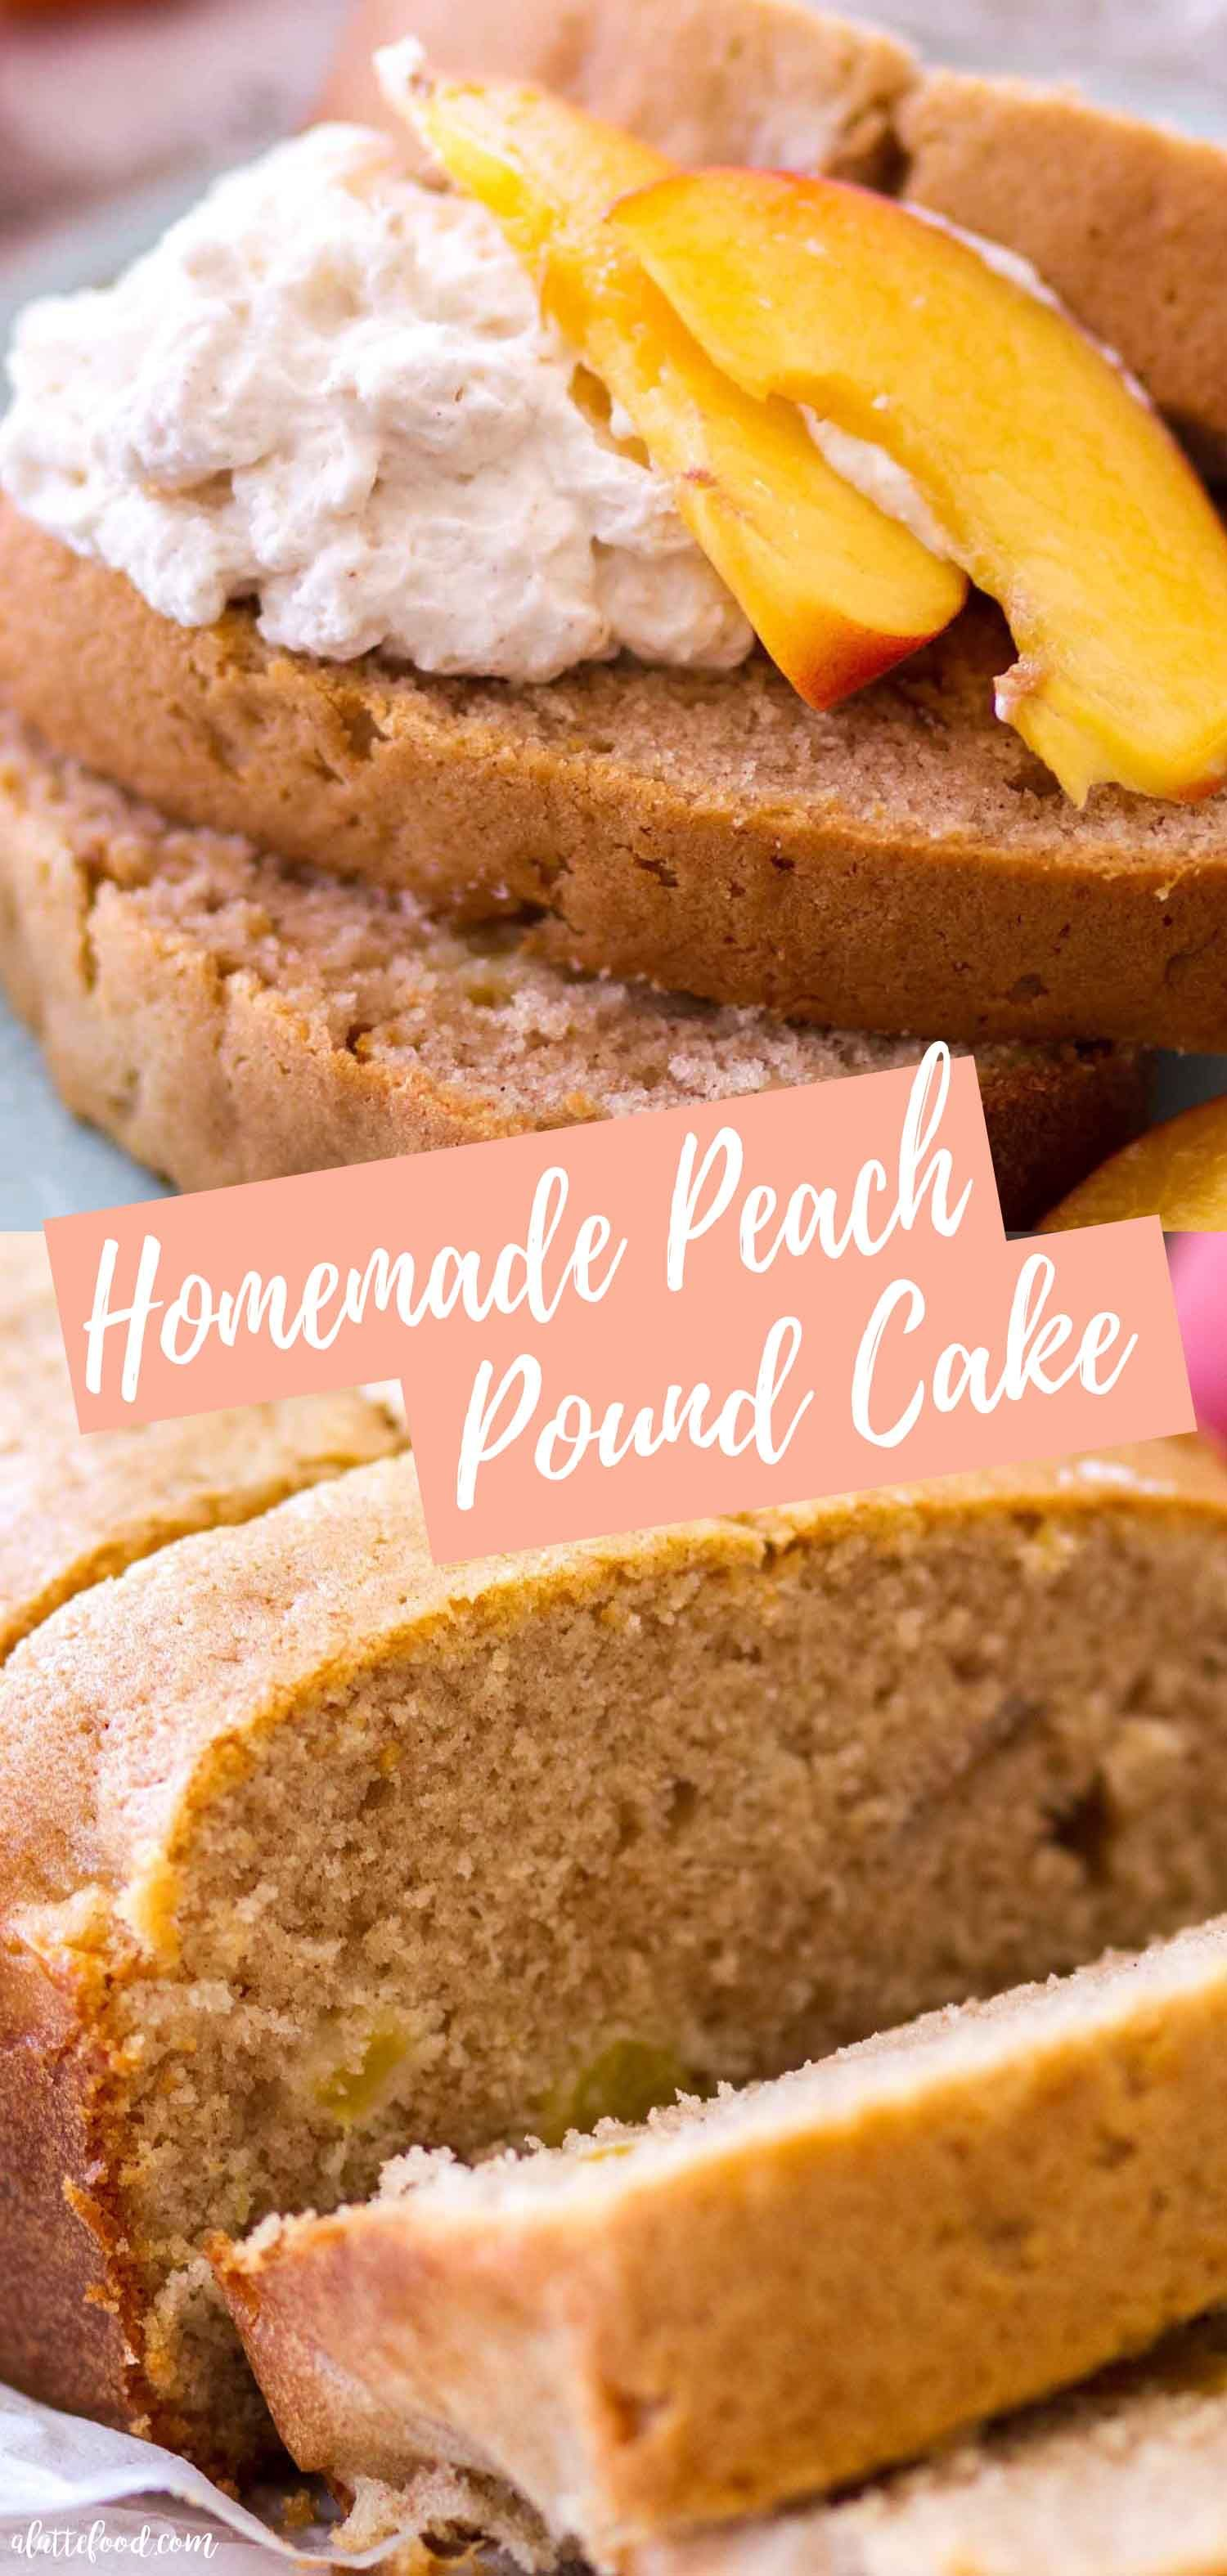 This Homemade Peach Pound Cake Recipe Is Made With Fresh Peaches